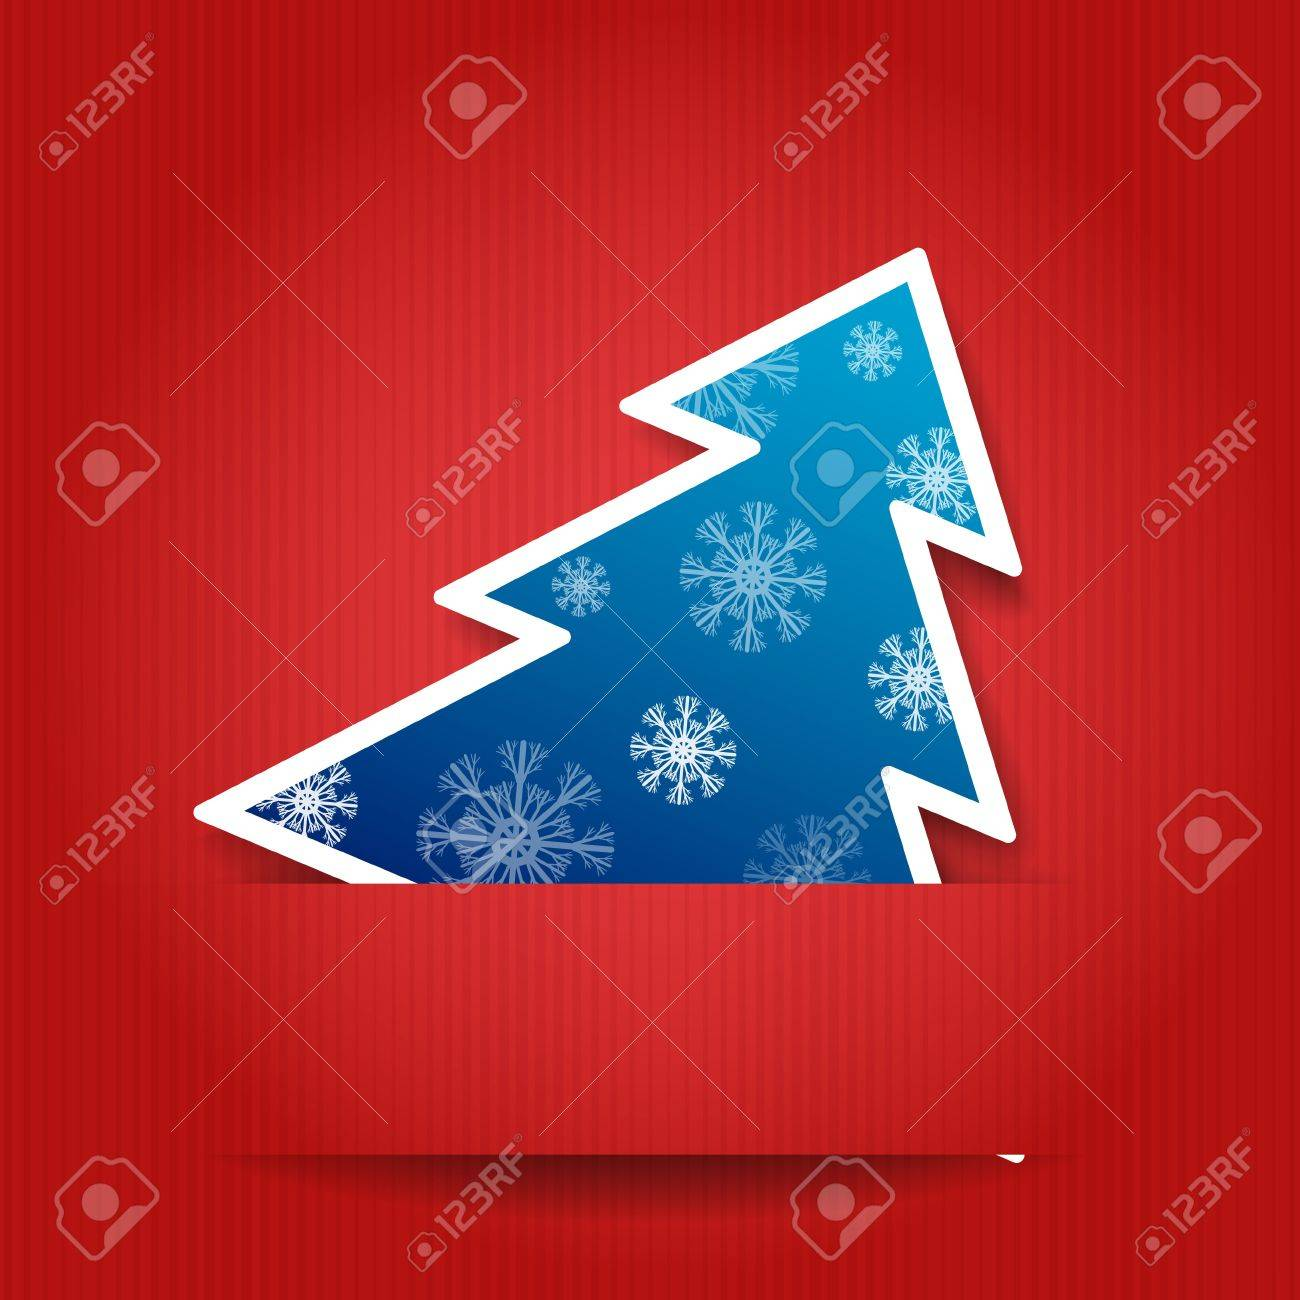 illustration Paper red background with Christmas tree - 16295013